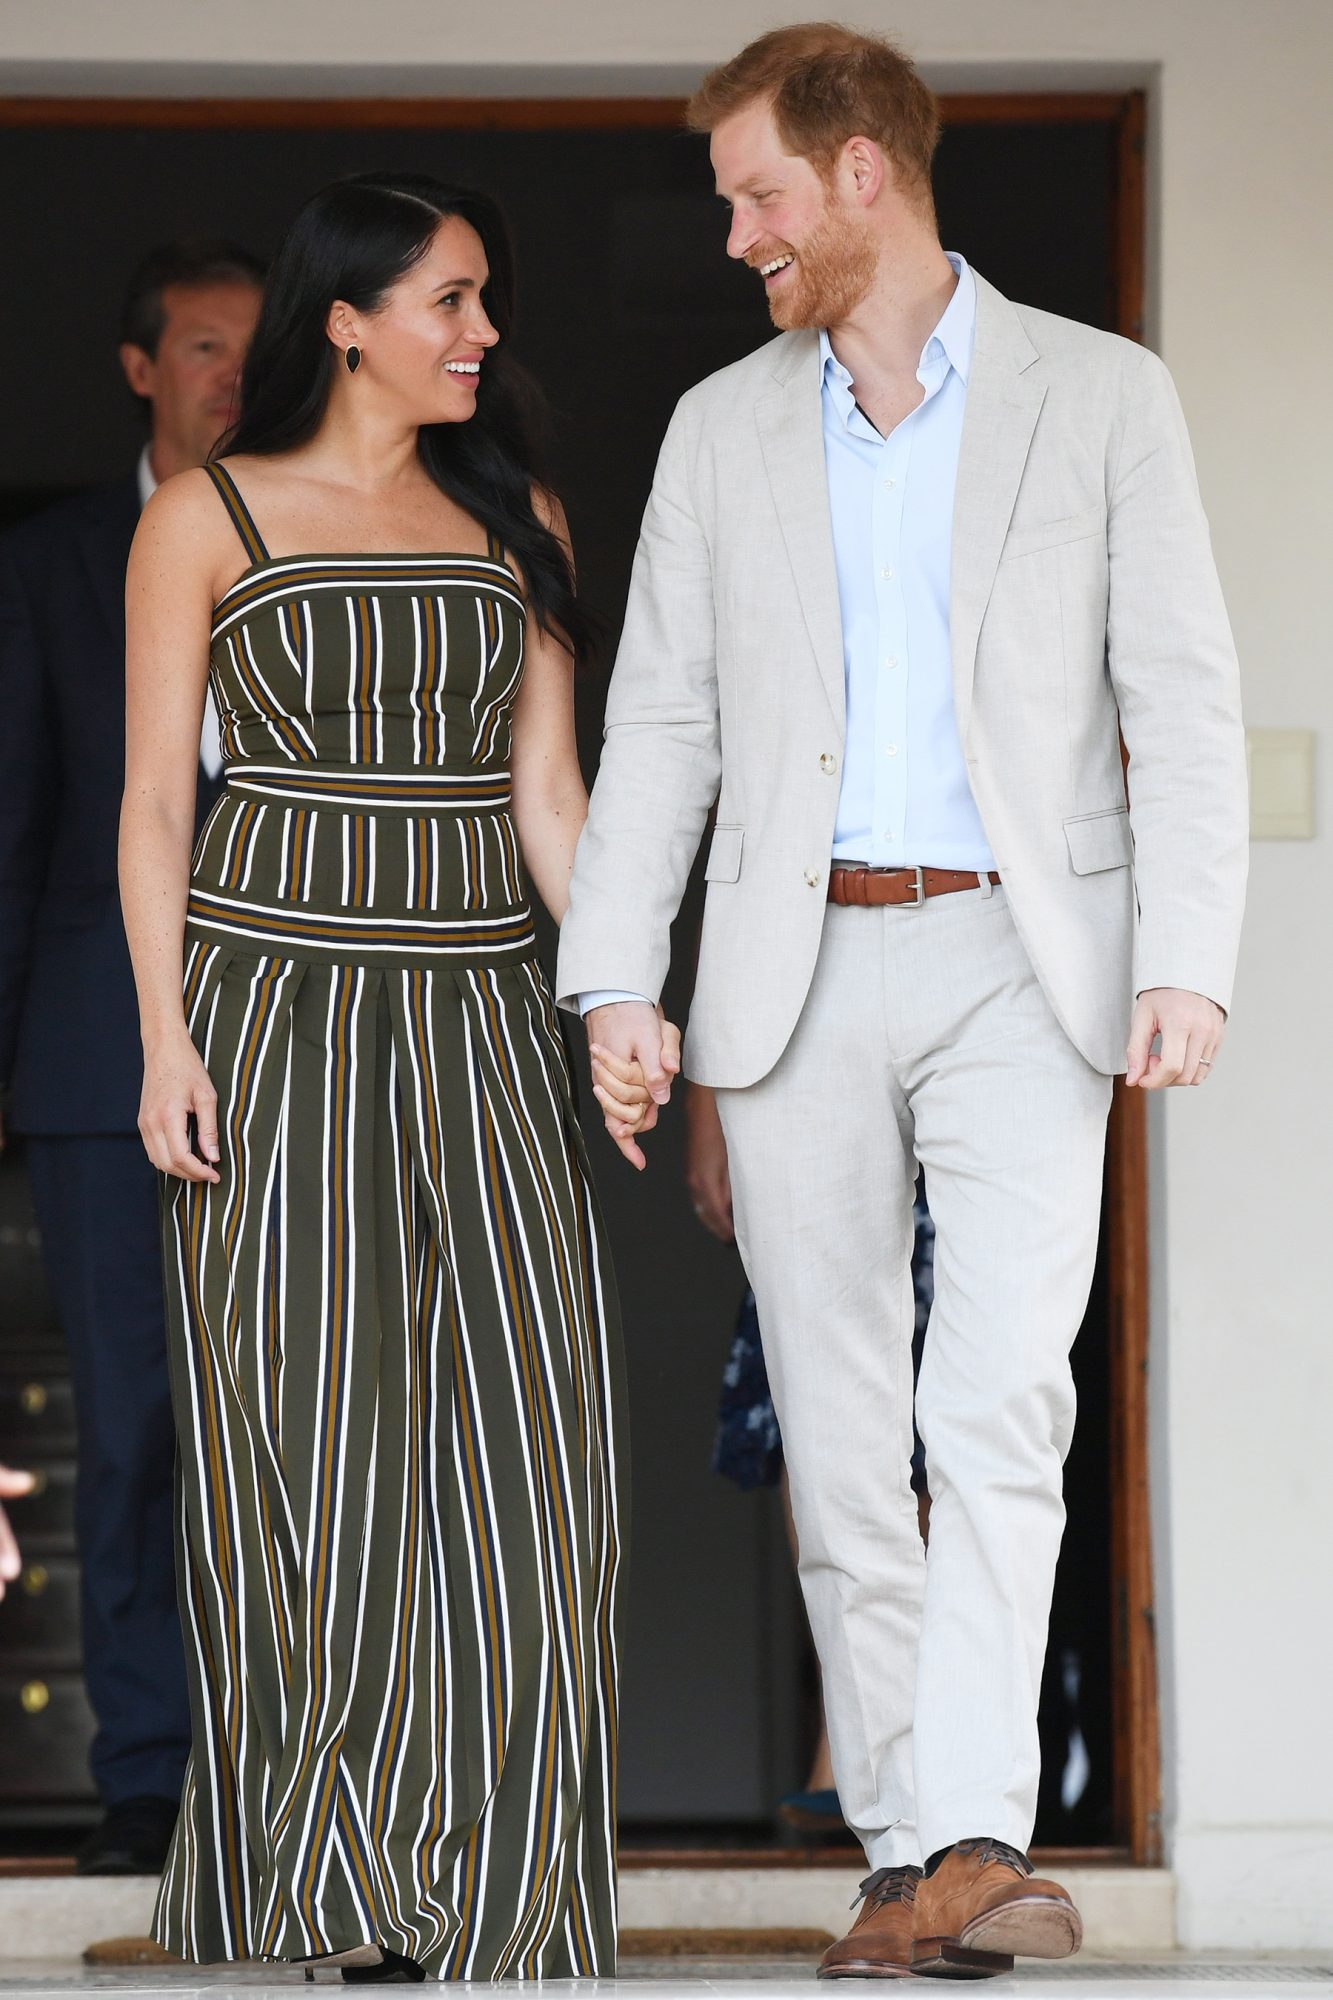 Prince Harry, Duke of Sussex, and Meghan Markle, Duchess of Sussex